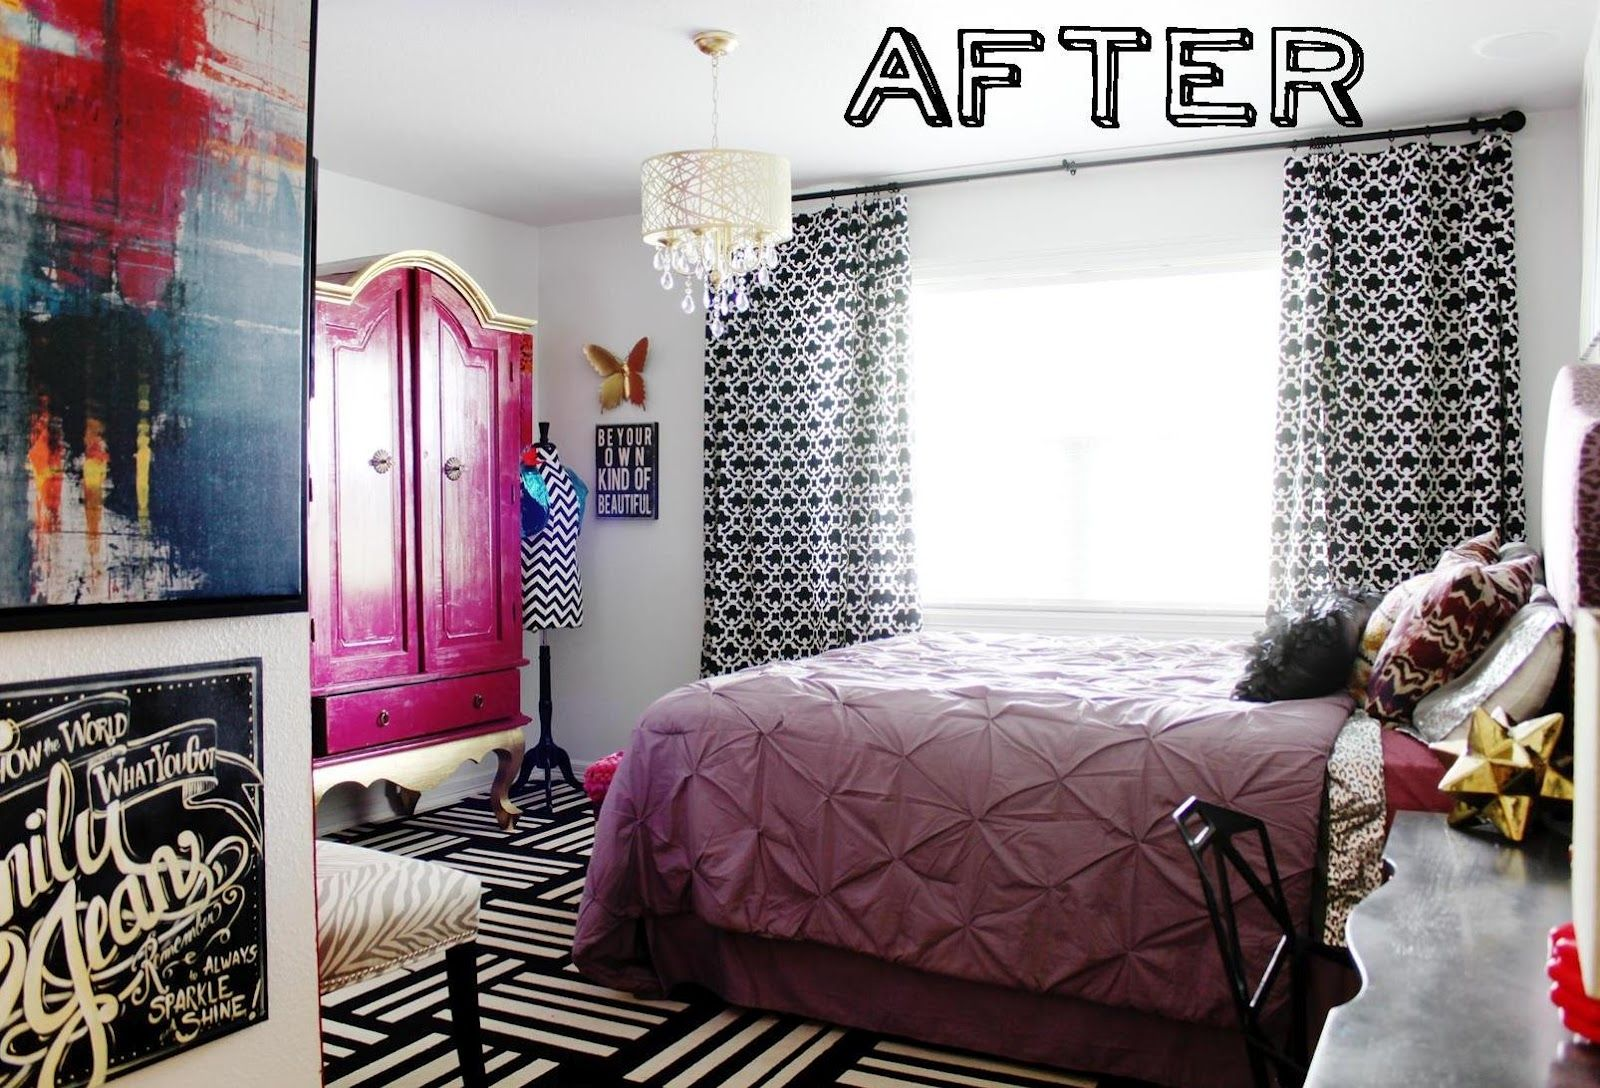 Bedroom Ideas 18 Year Old image result for room decoration ideas for 18 year old | sweet